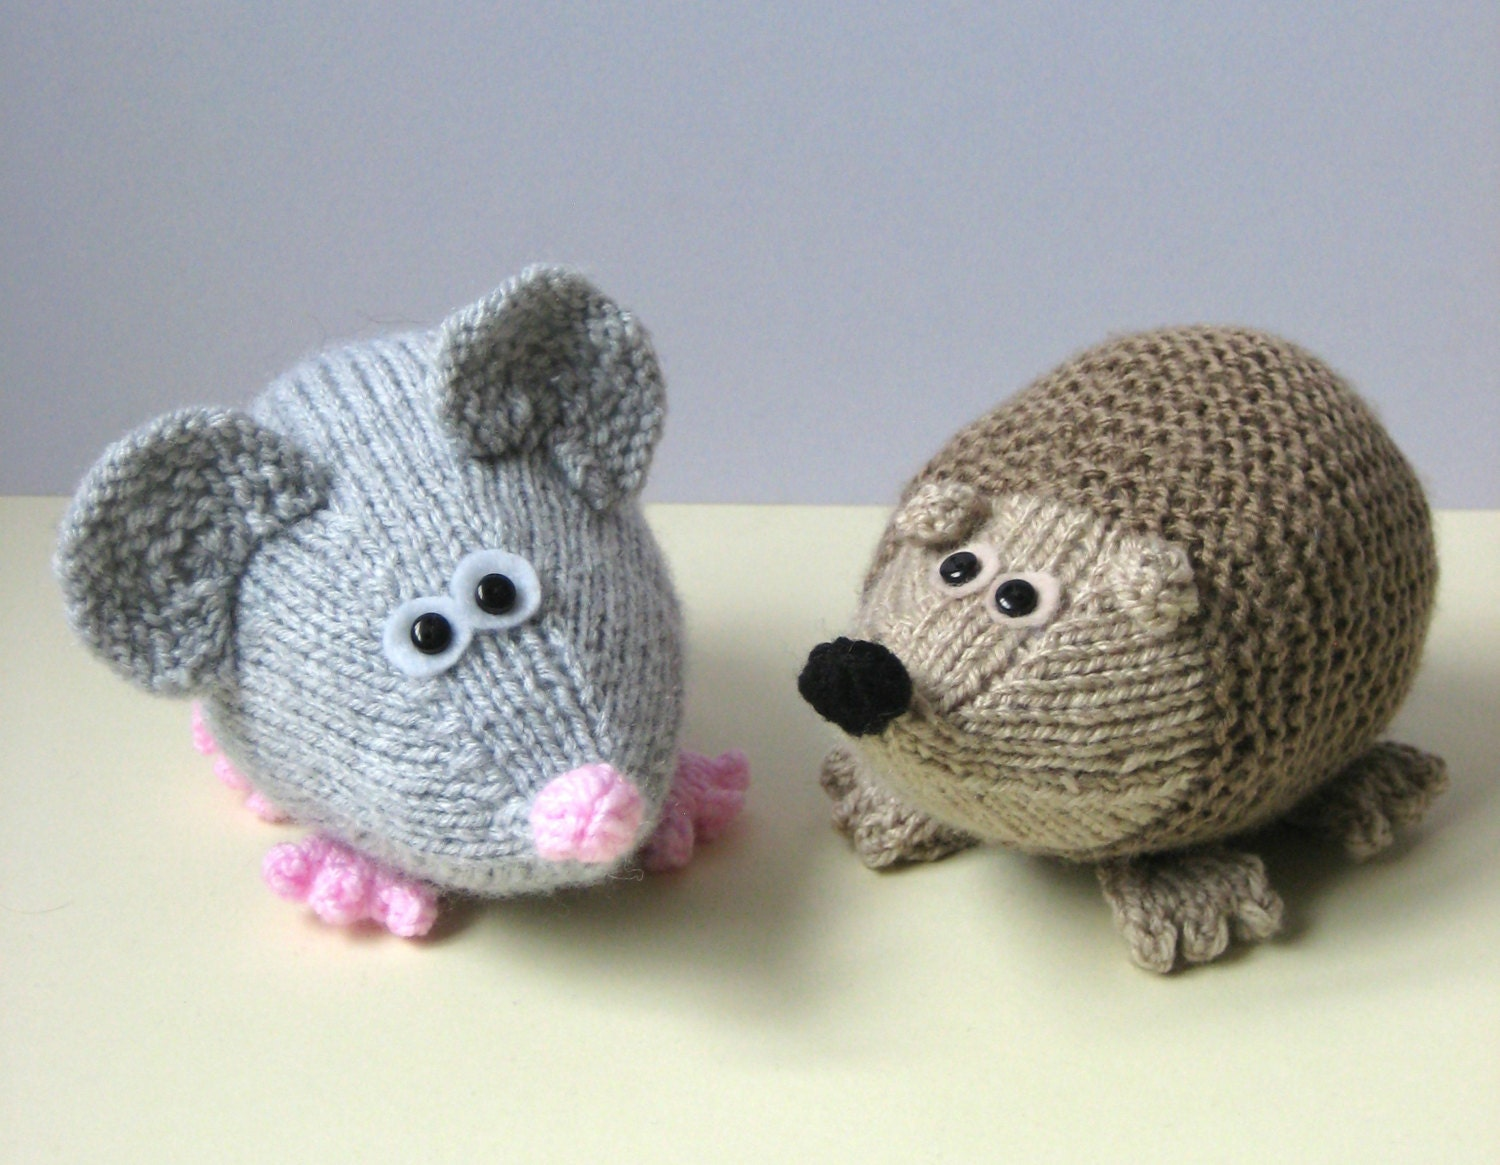 Knitting Pattern For Sonic The Hedgehog Toy : Spike the Hedgehog and Moe the Mouse toy knitting patterns